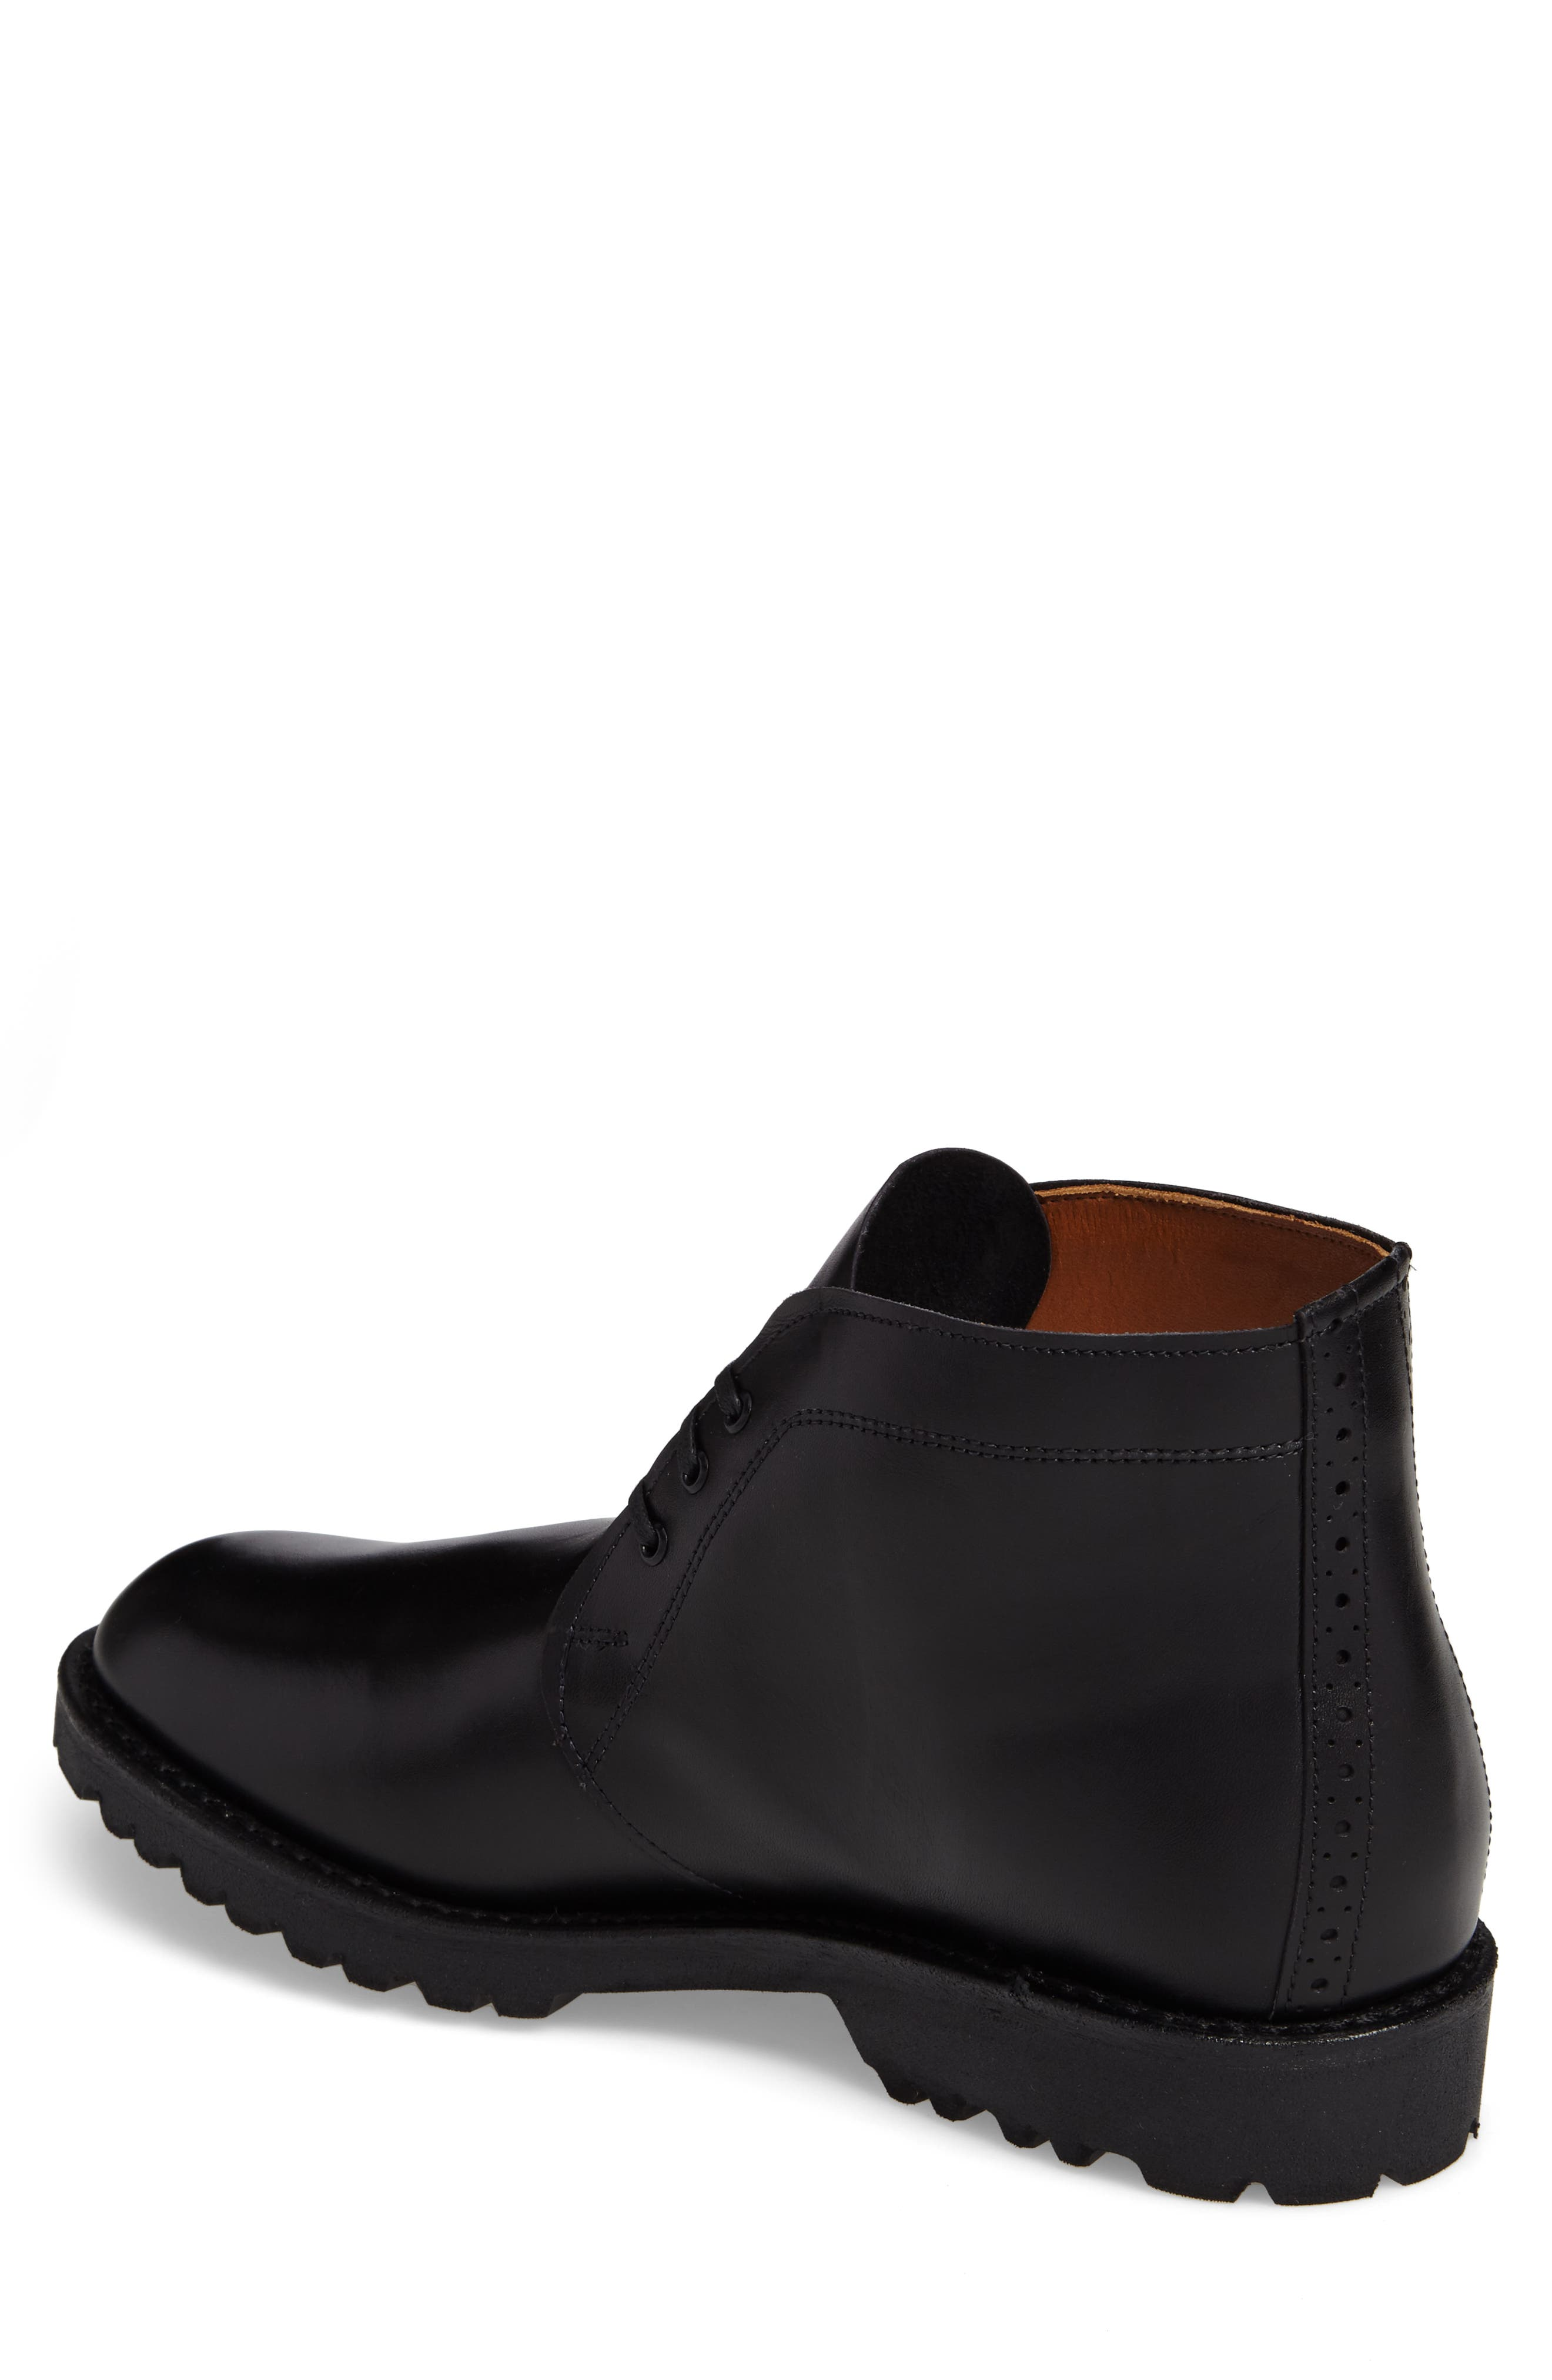 Tate Chukka Boot,                             Alternate thumbnail 2, color,                             001